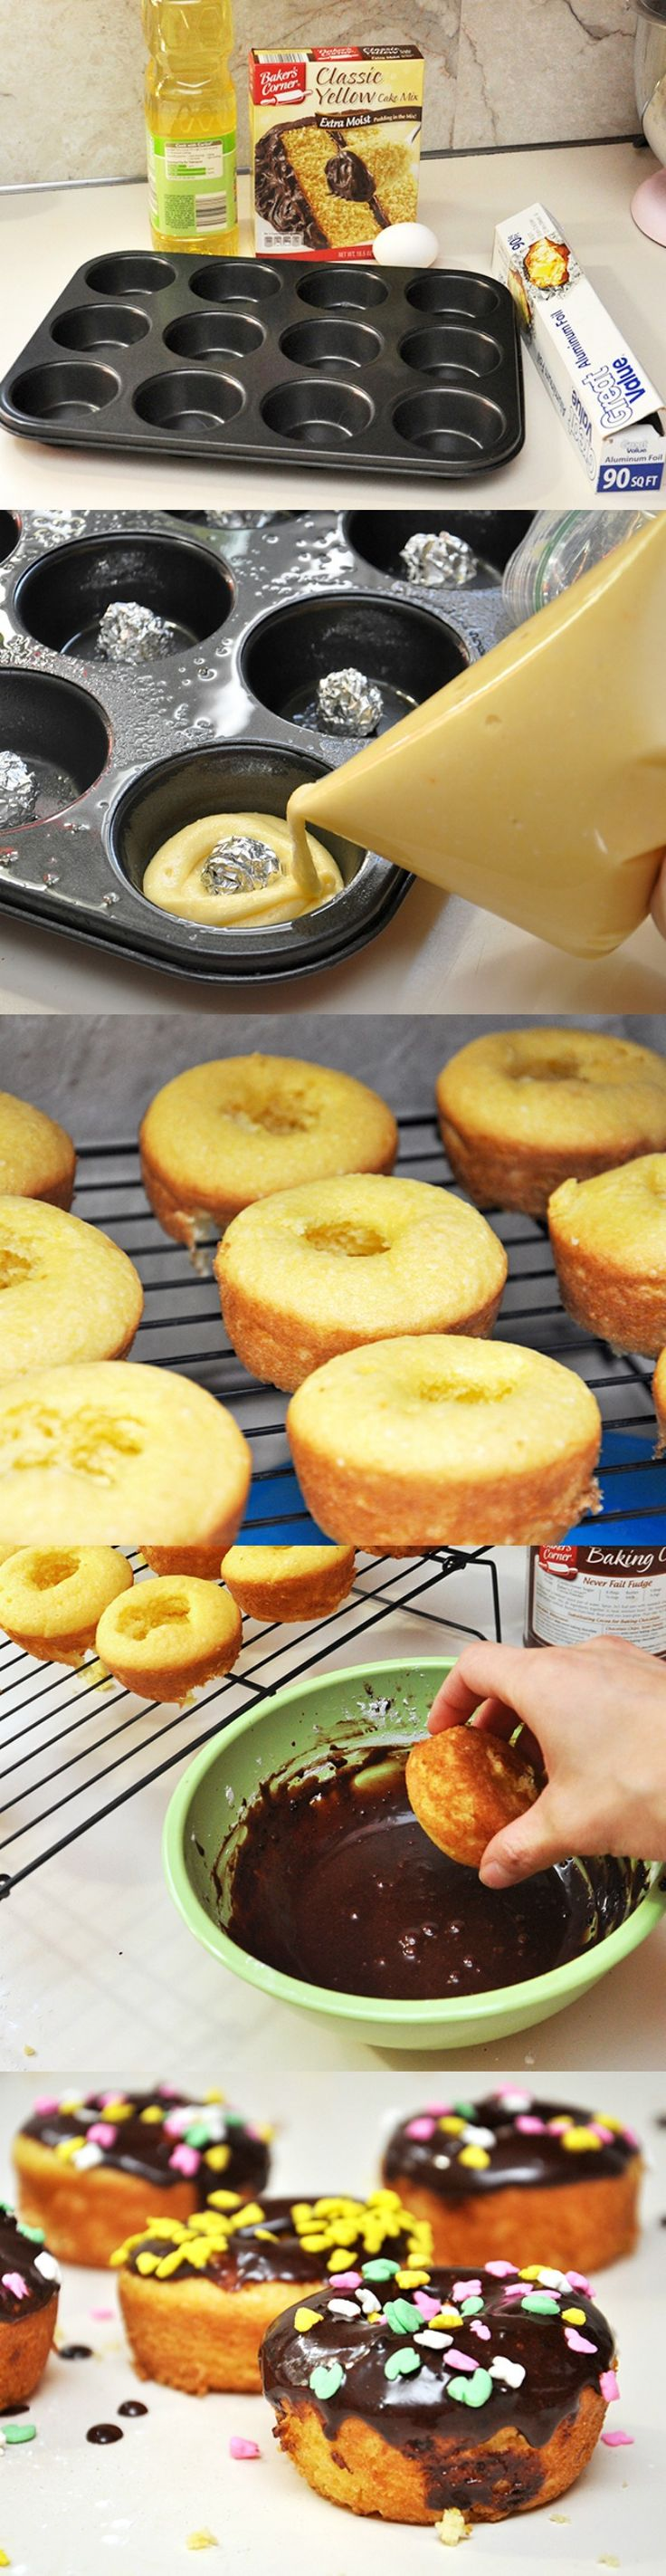 What looks like a donut but isn't? This delicious cake mix donut recipe is perfect for when you want a delicious treat to satisfy your sweet tooth.